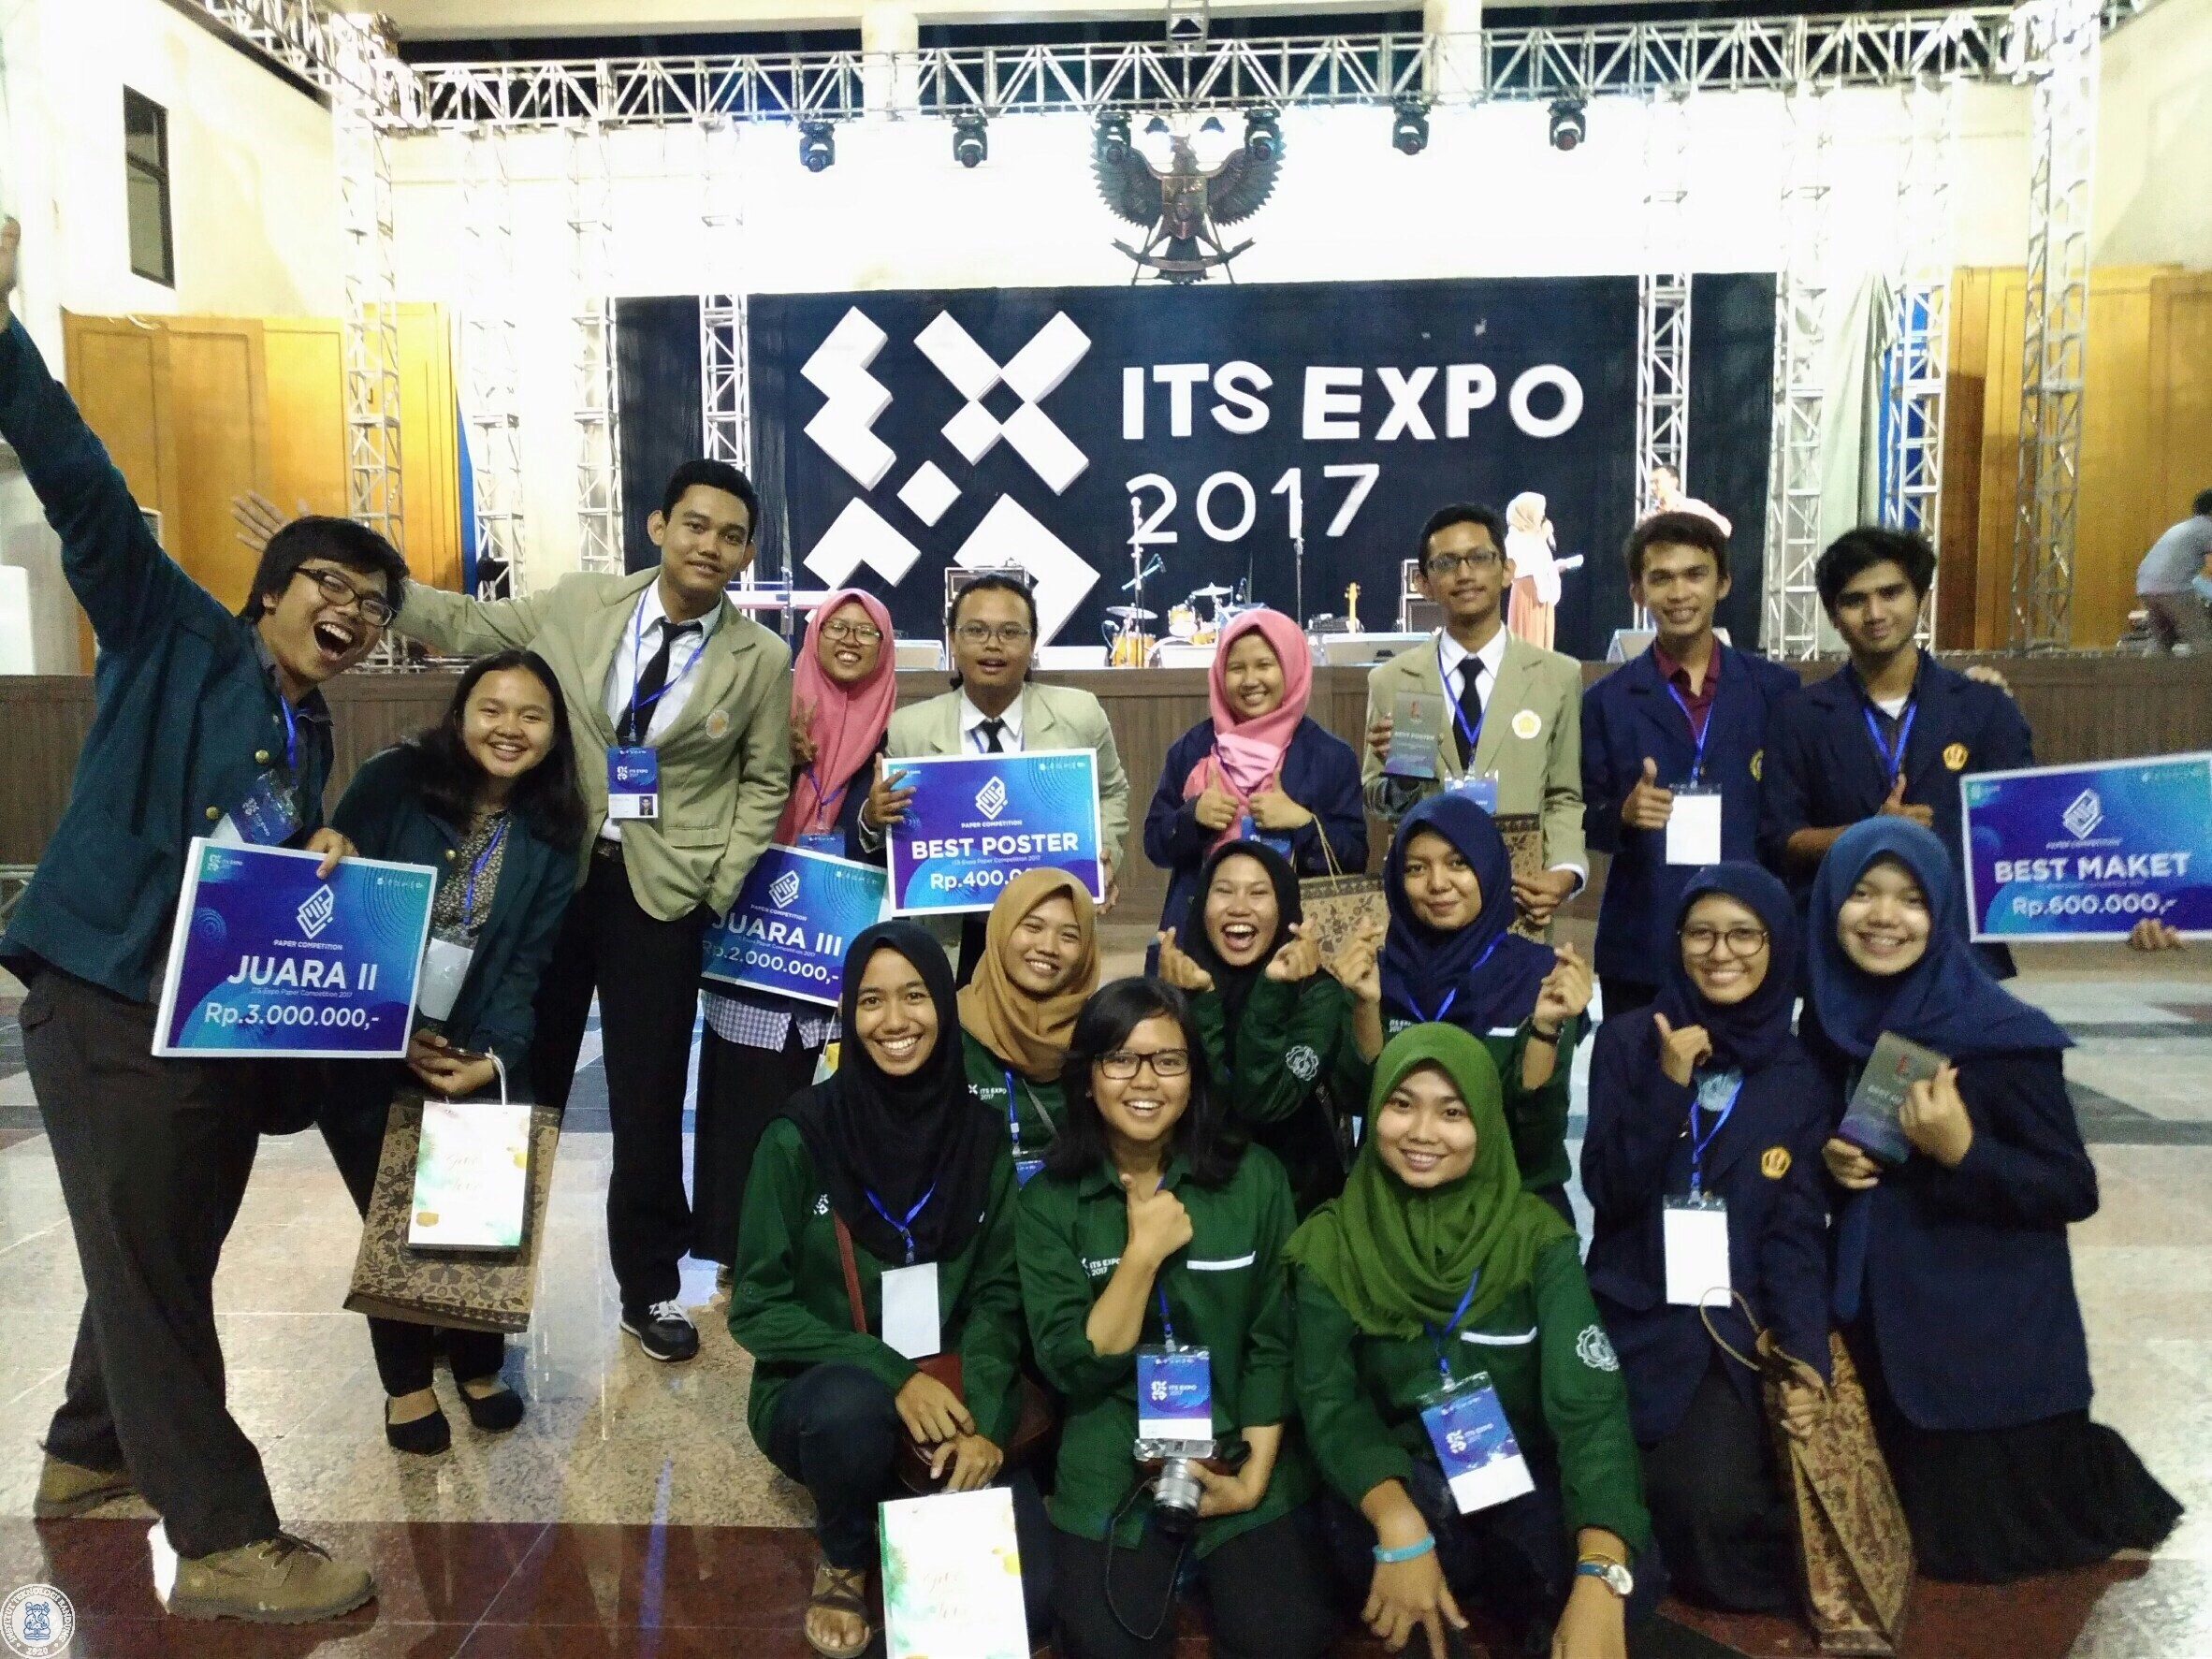 itb-students-gain-achievement-in-iepc-2017